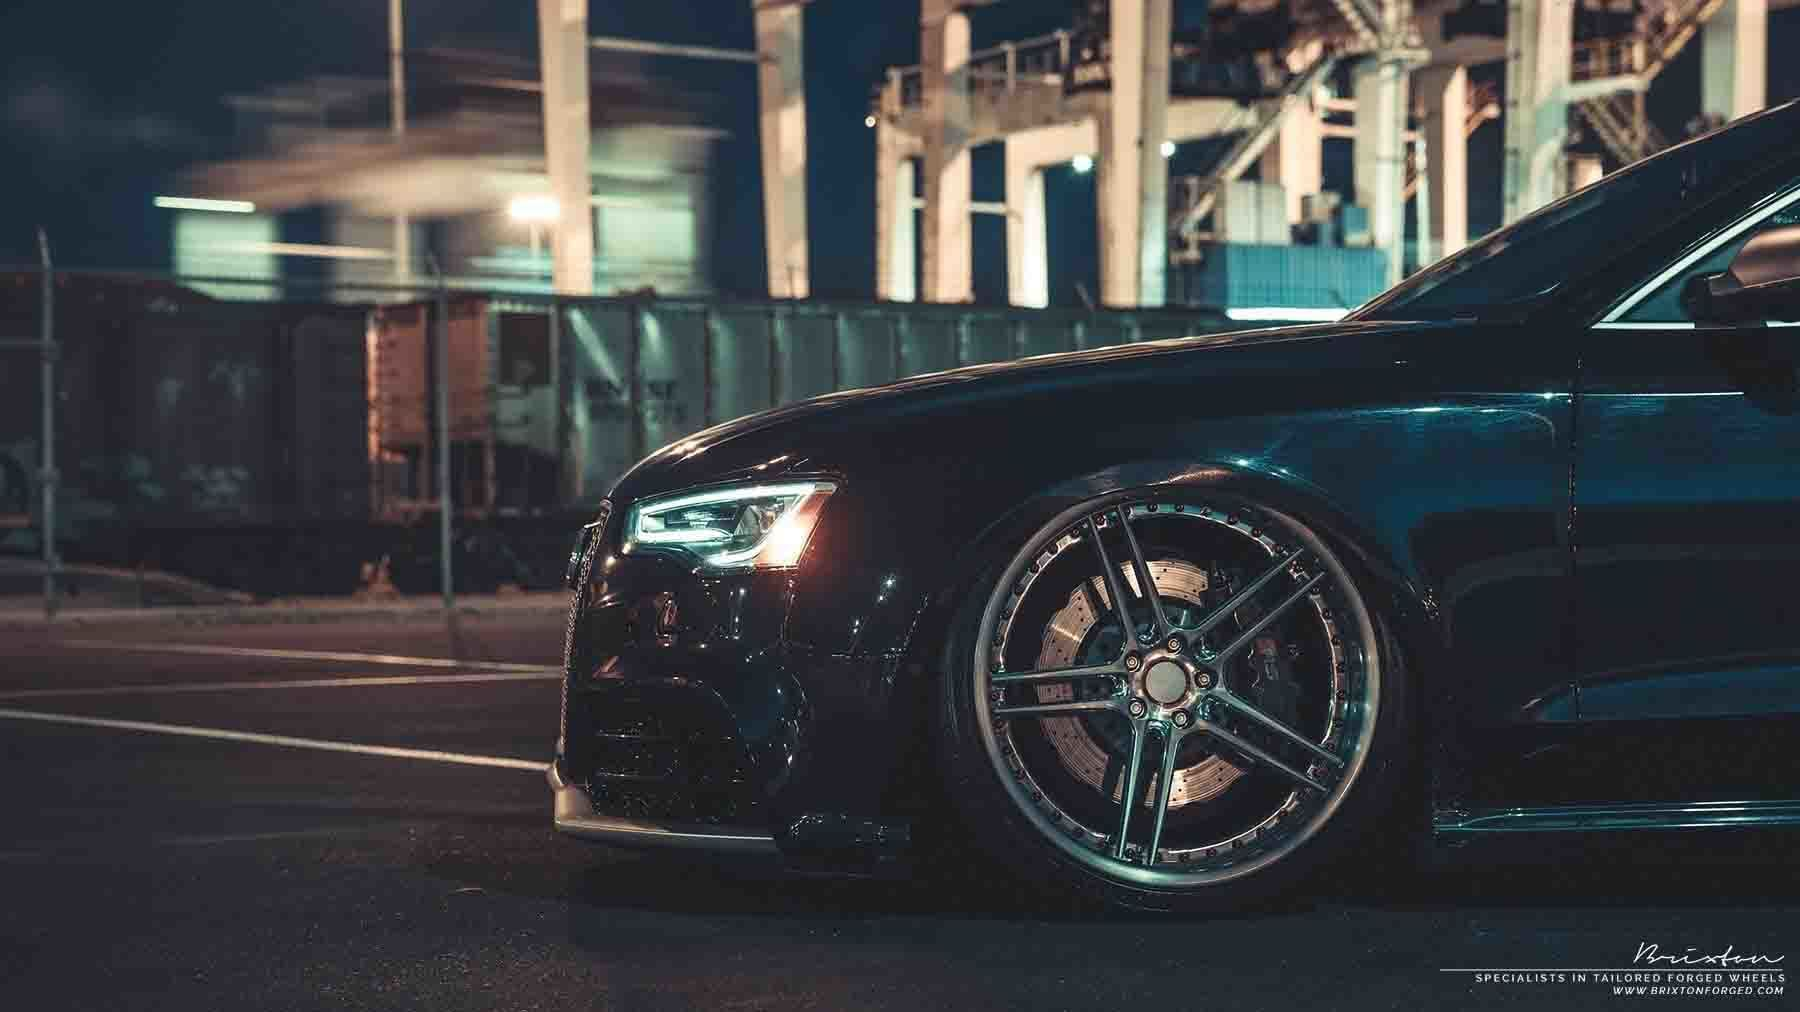 images-products-1-2214-232974502-brixton-forged-black-audi-rs5-brixton-m52-monaco-series-21-inch-3-piece-forged-wheels-brushed-po.jpg